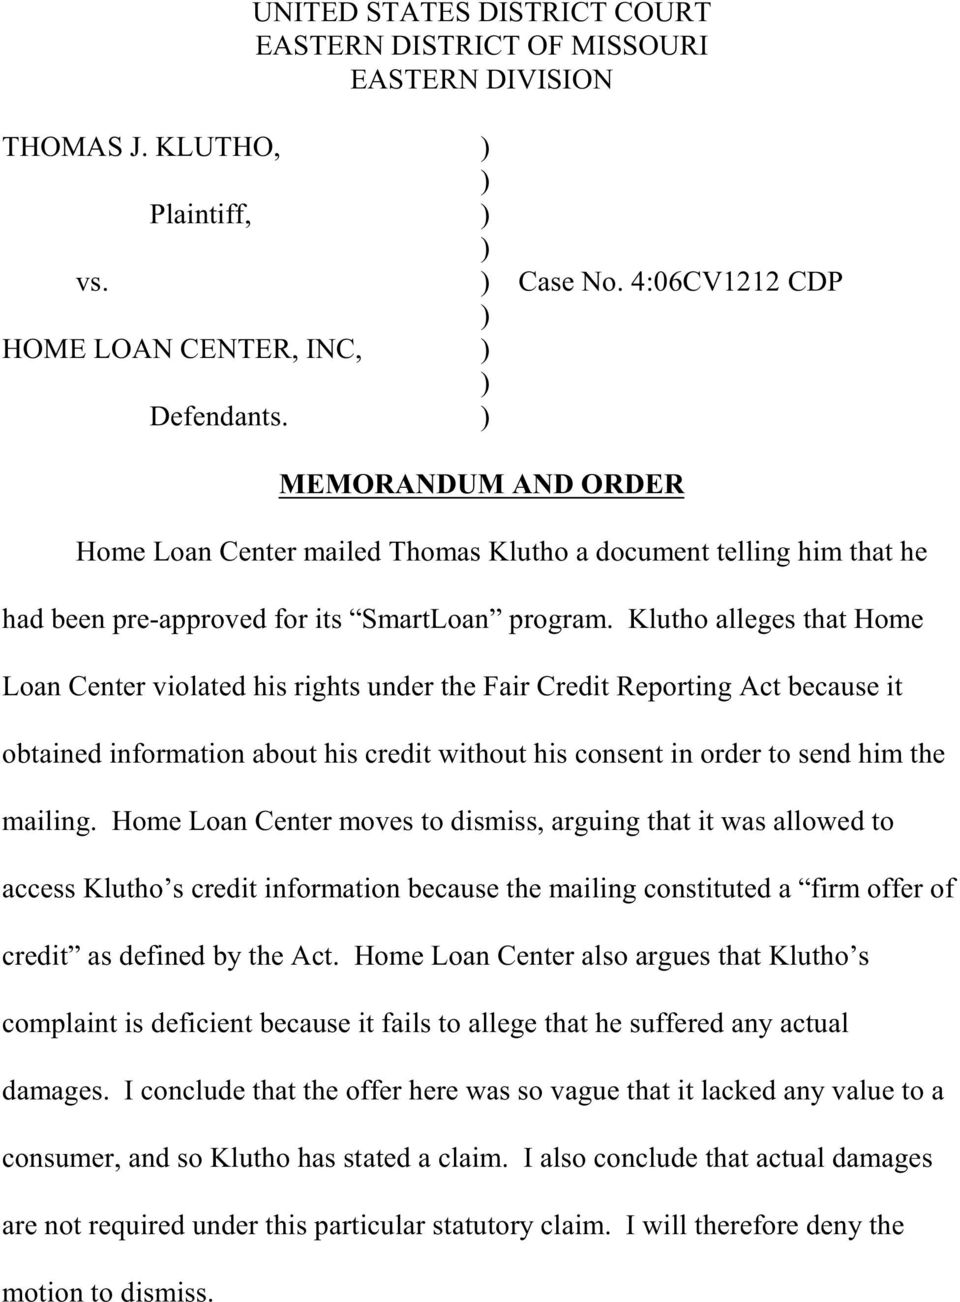 Klutho alleges that Home Loan Center violated his rights under the Fair Credit Reporting Act because it obtained information about his credit without his consent in order to send him the mailing.